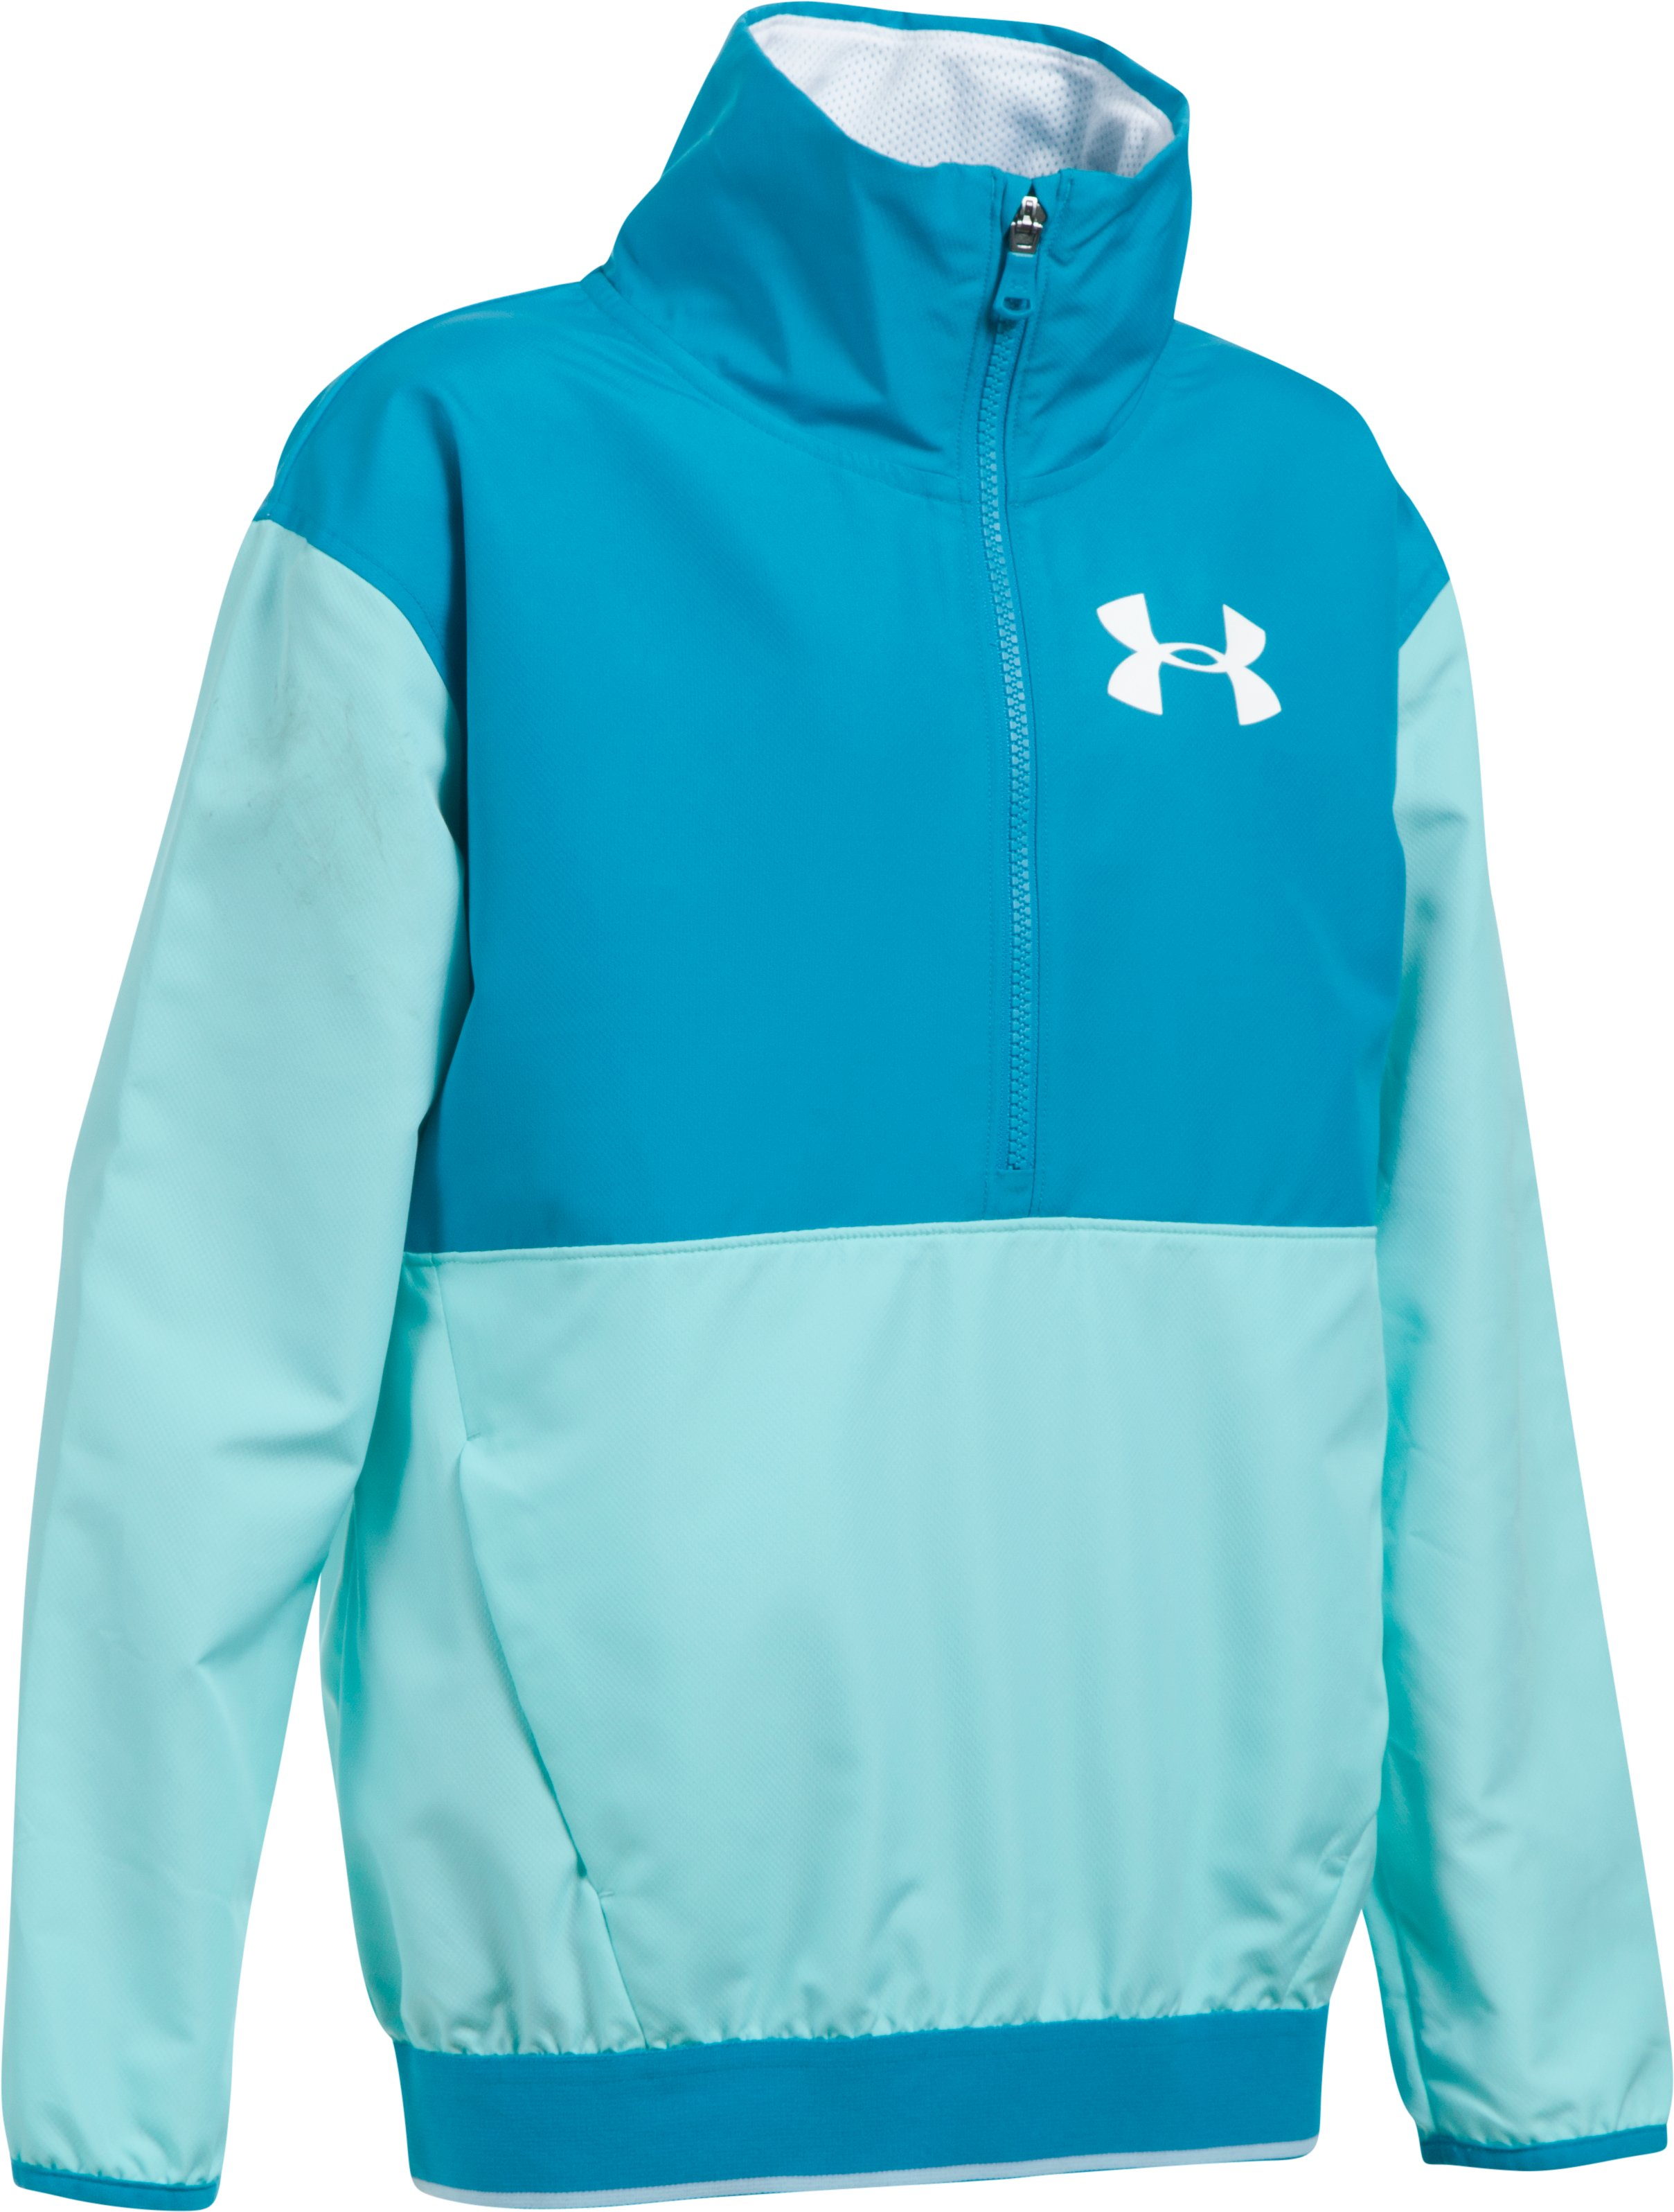 Girls' UA Train To Game Jacket, BLUE INFINITY, undefined